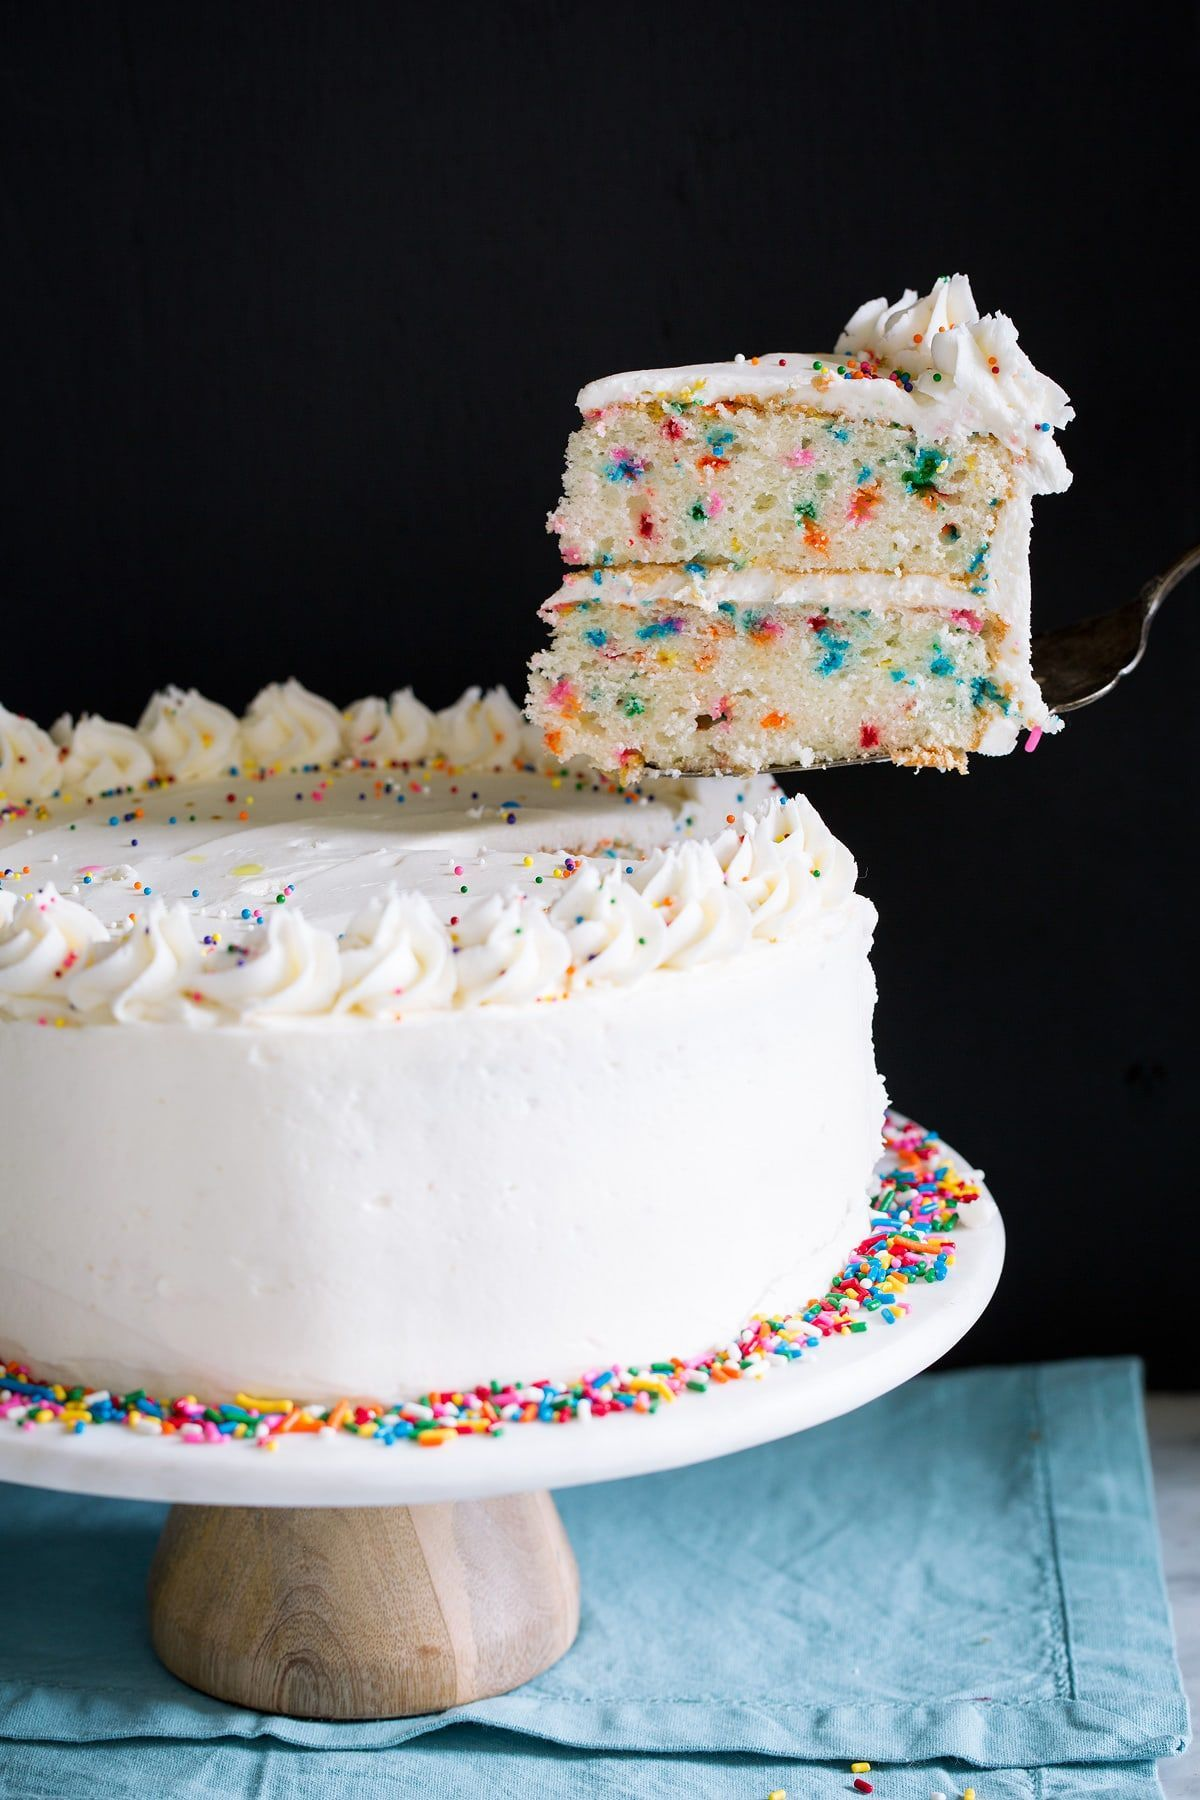 Lifting a single slice with a serving spatula from a whole cake.